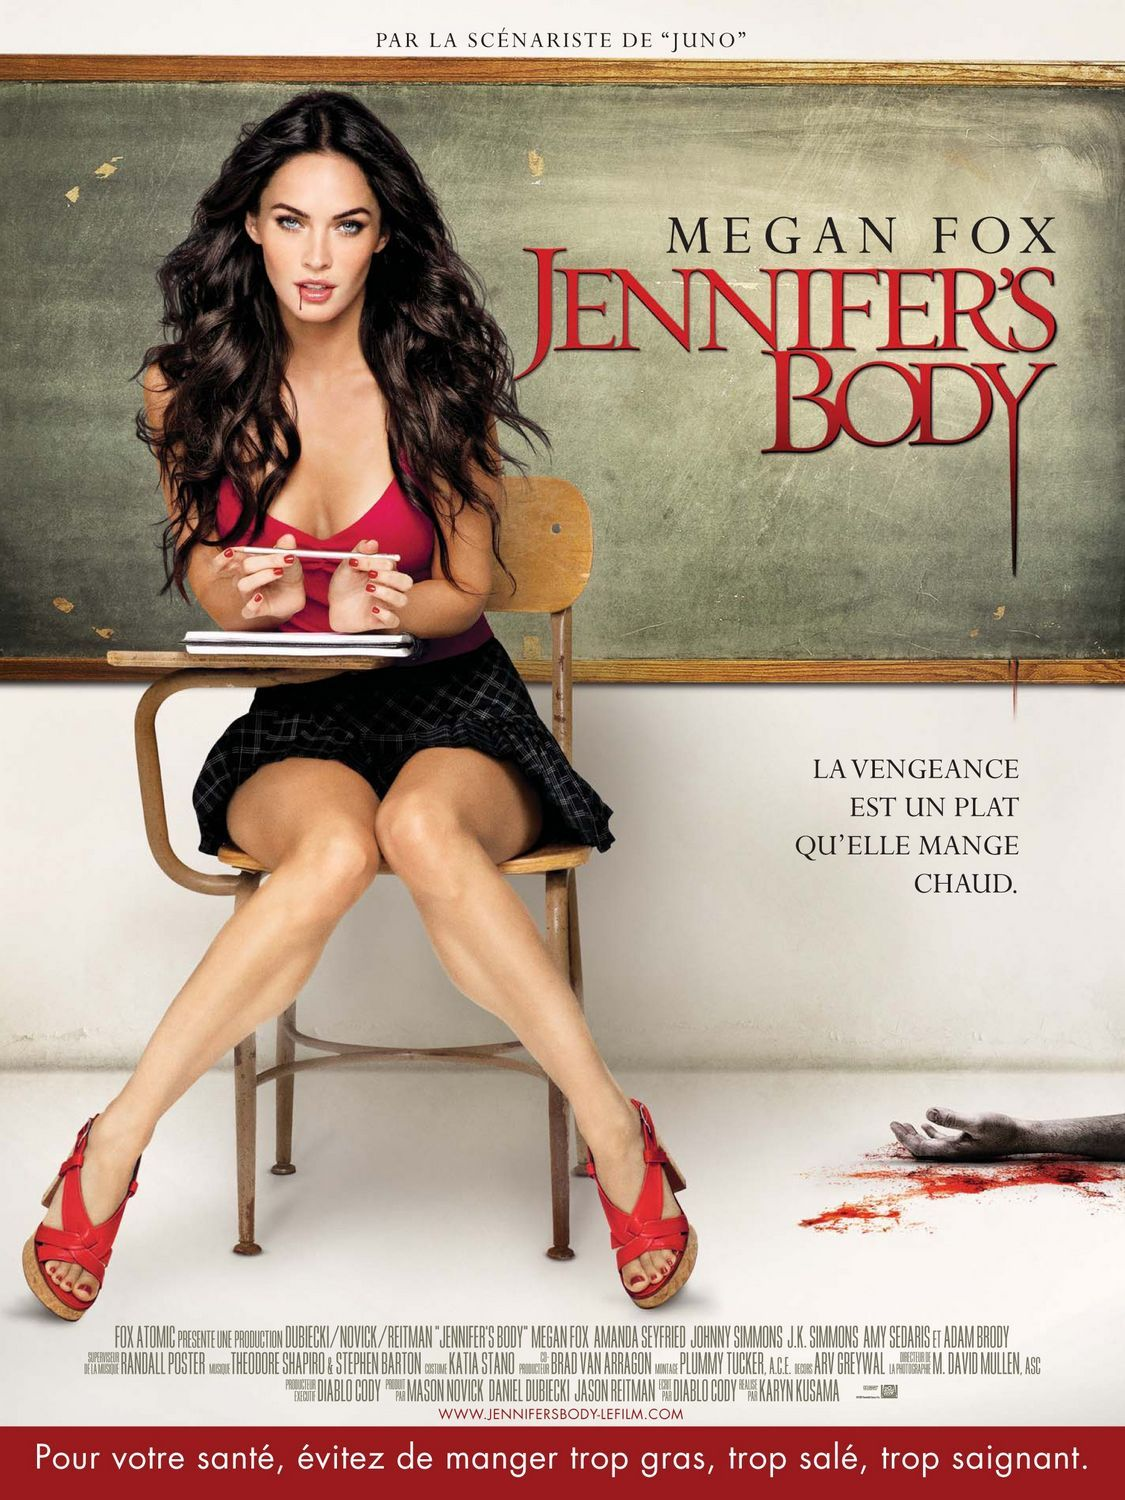 Bildresultat för jennifer's body